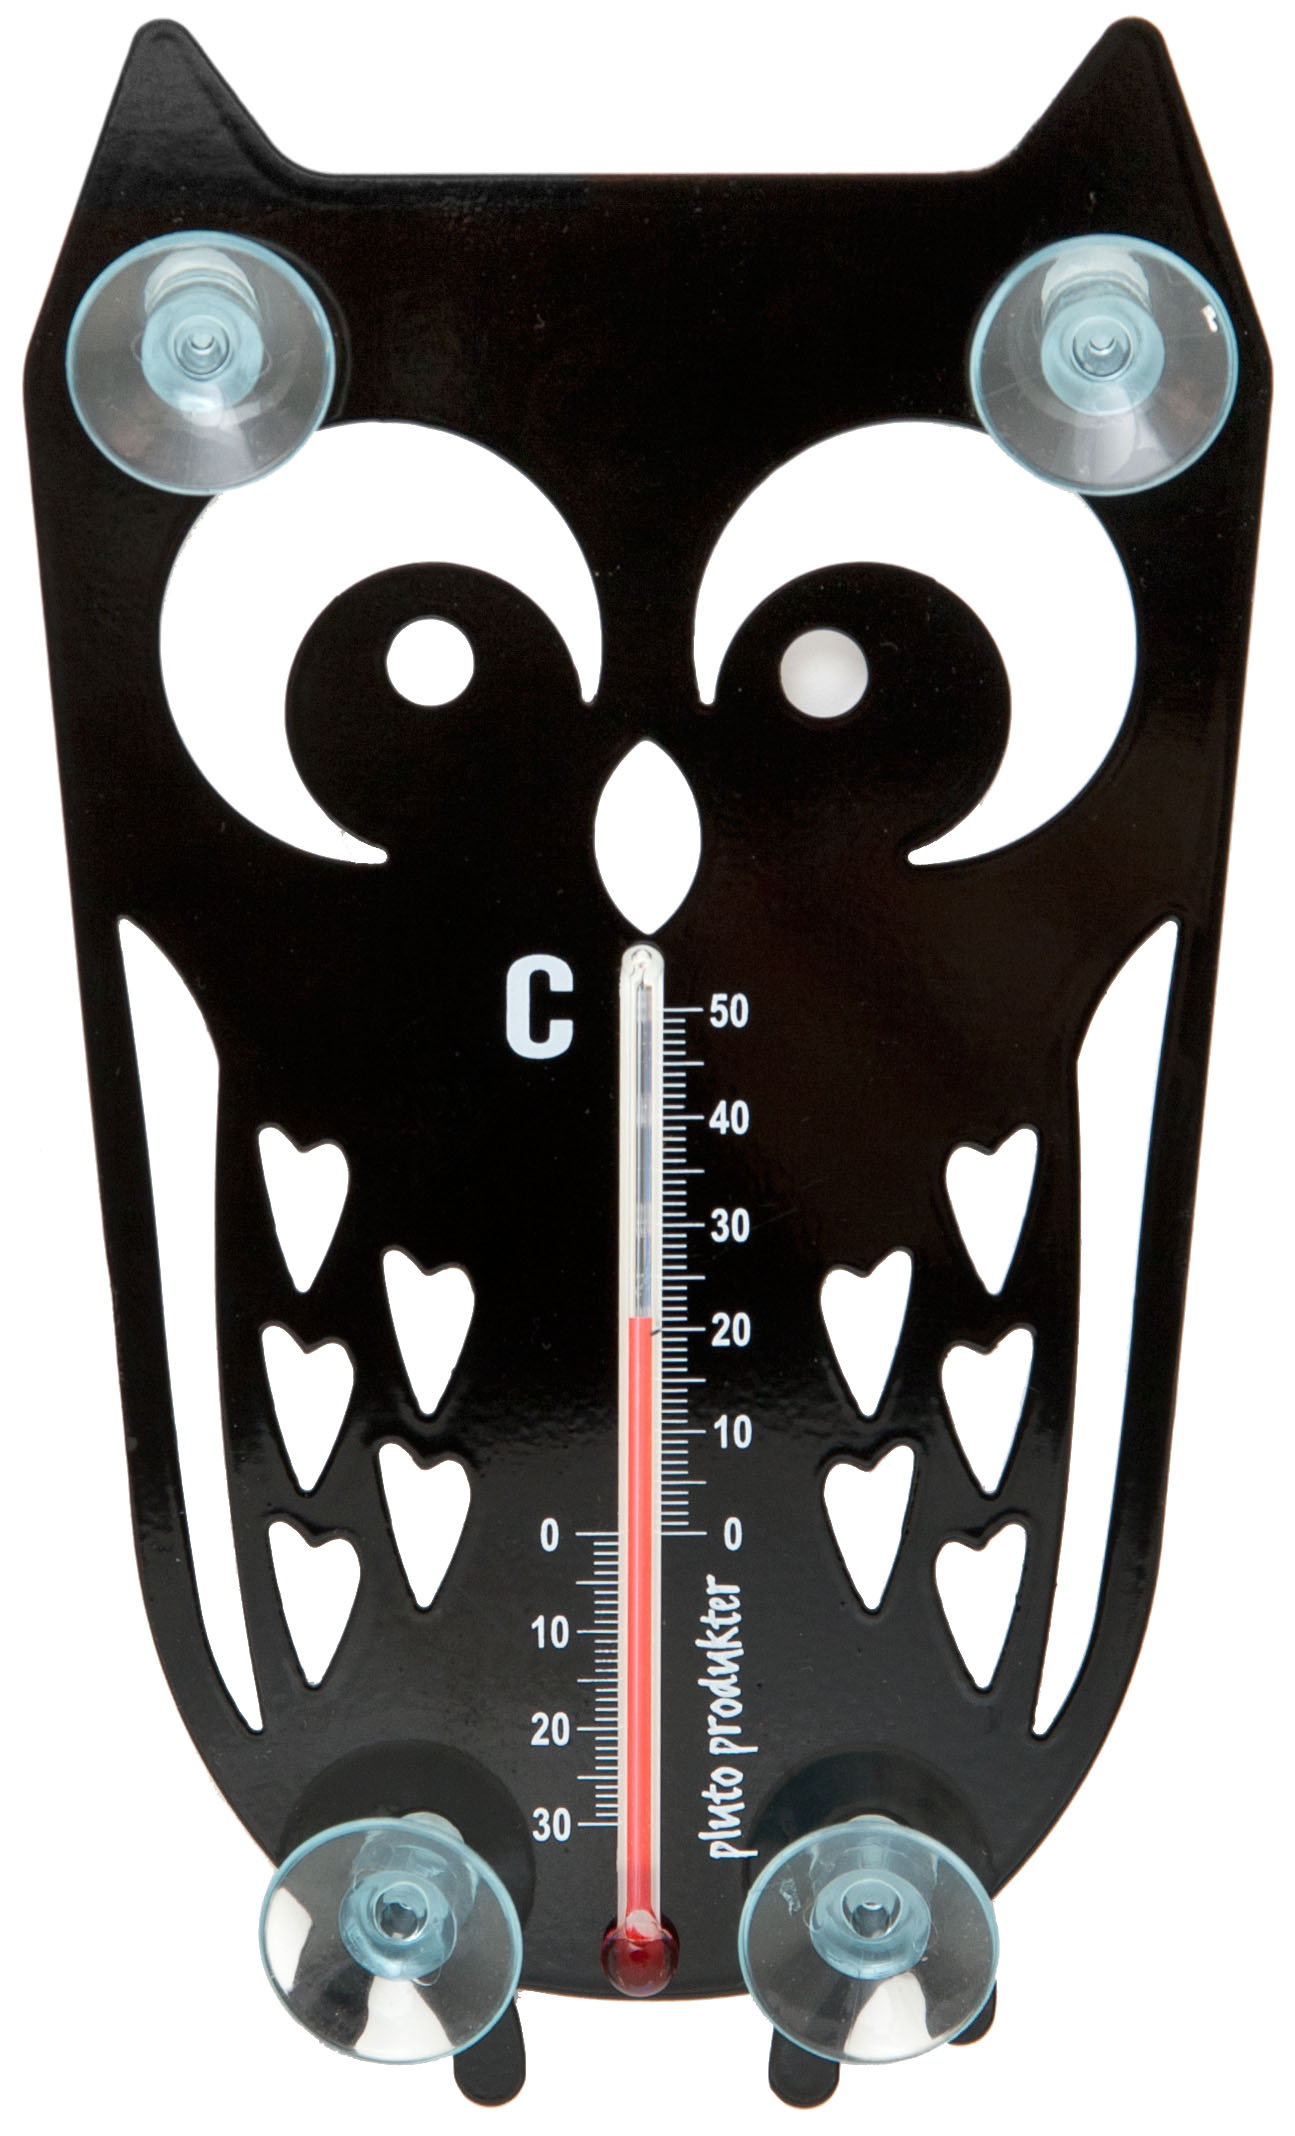 Thermometer uil